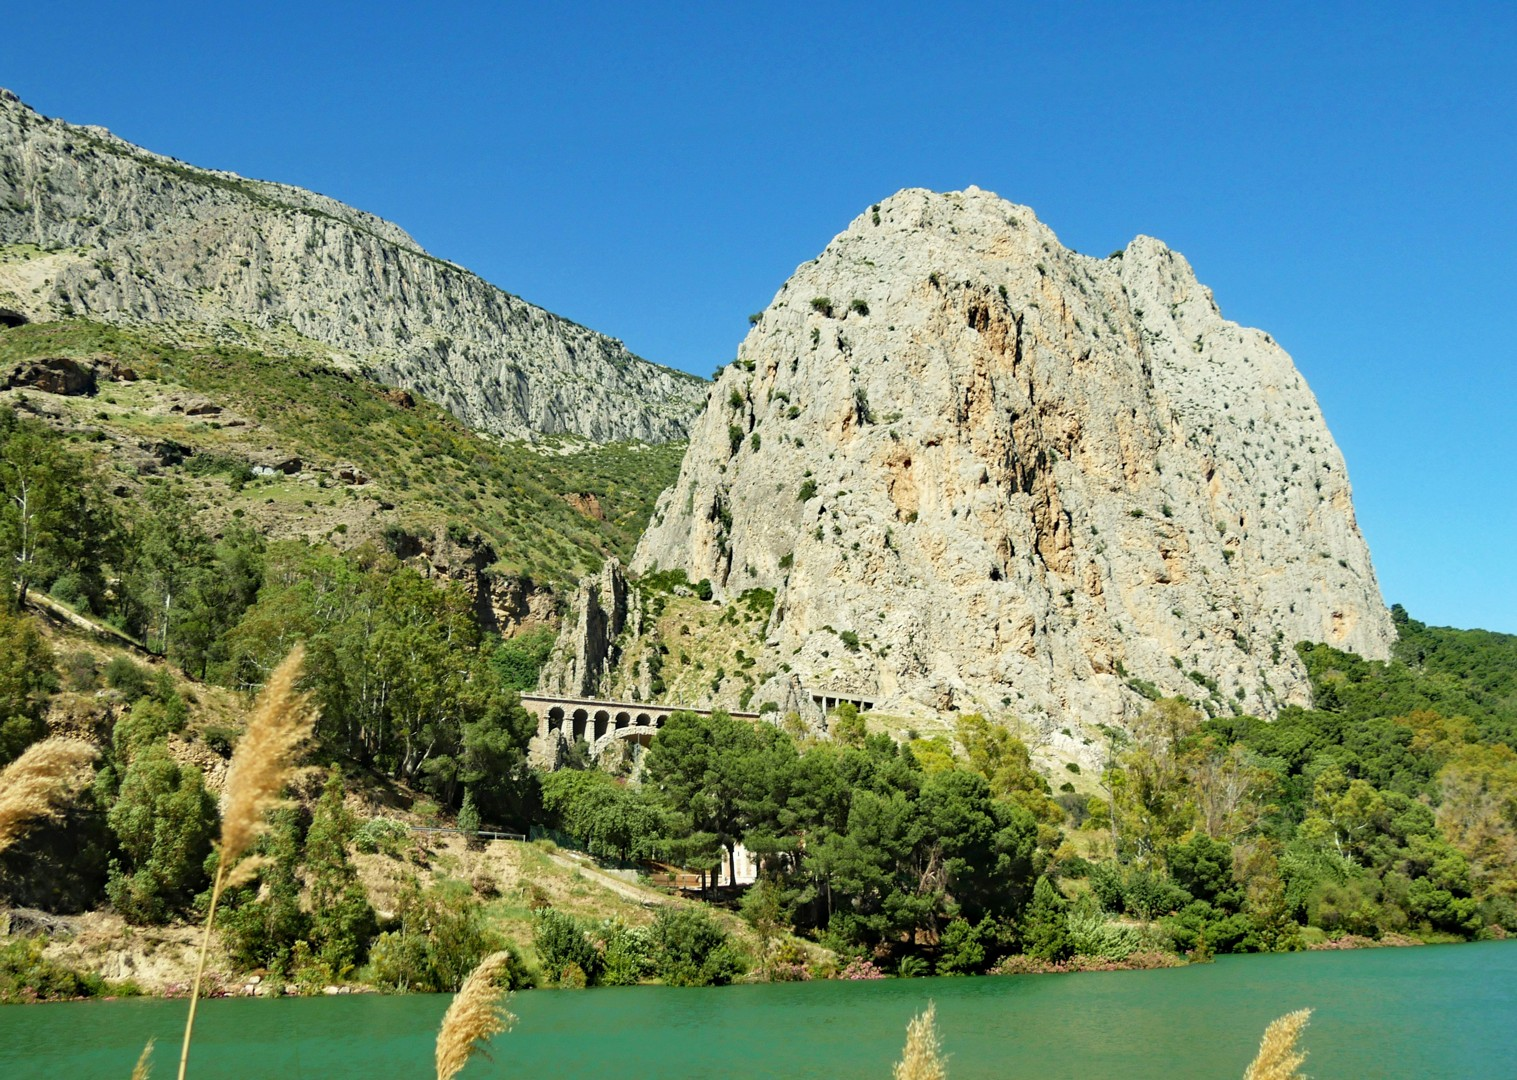 el-chorro-lake-road-cycling-trip.jpg - Spain - Basque Country to Andalucia - North to South - 16 Day - Guided Road Cycling Holiday - Road Cycling